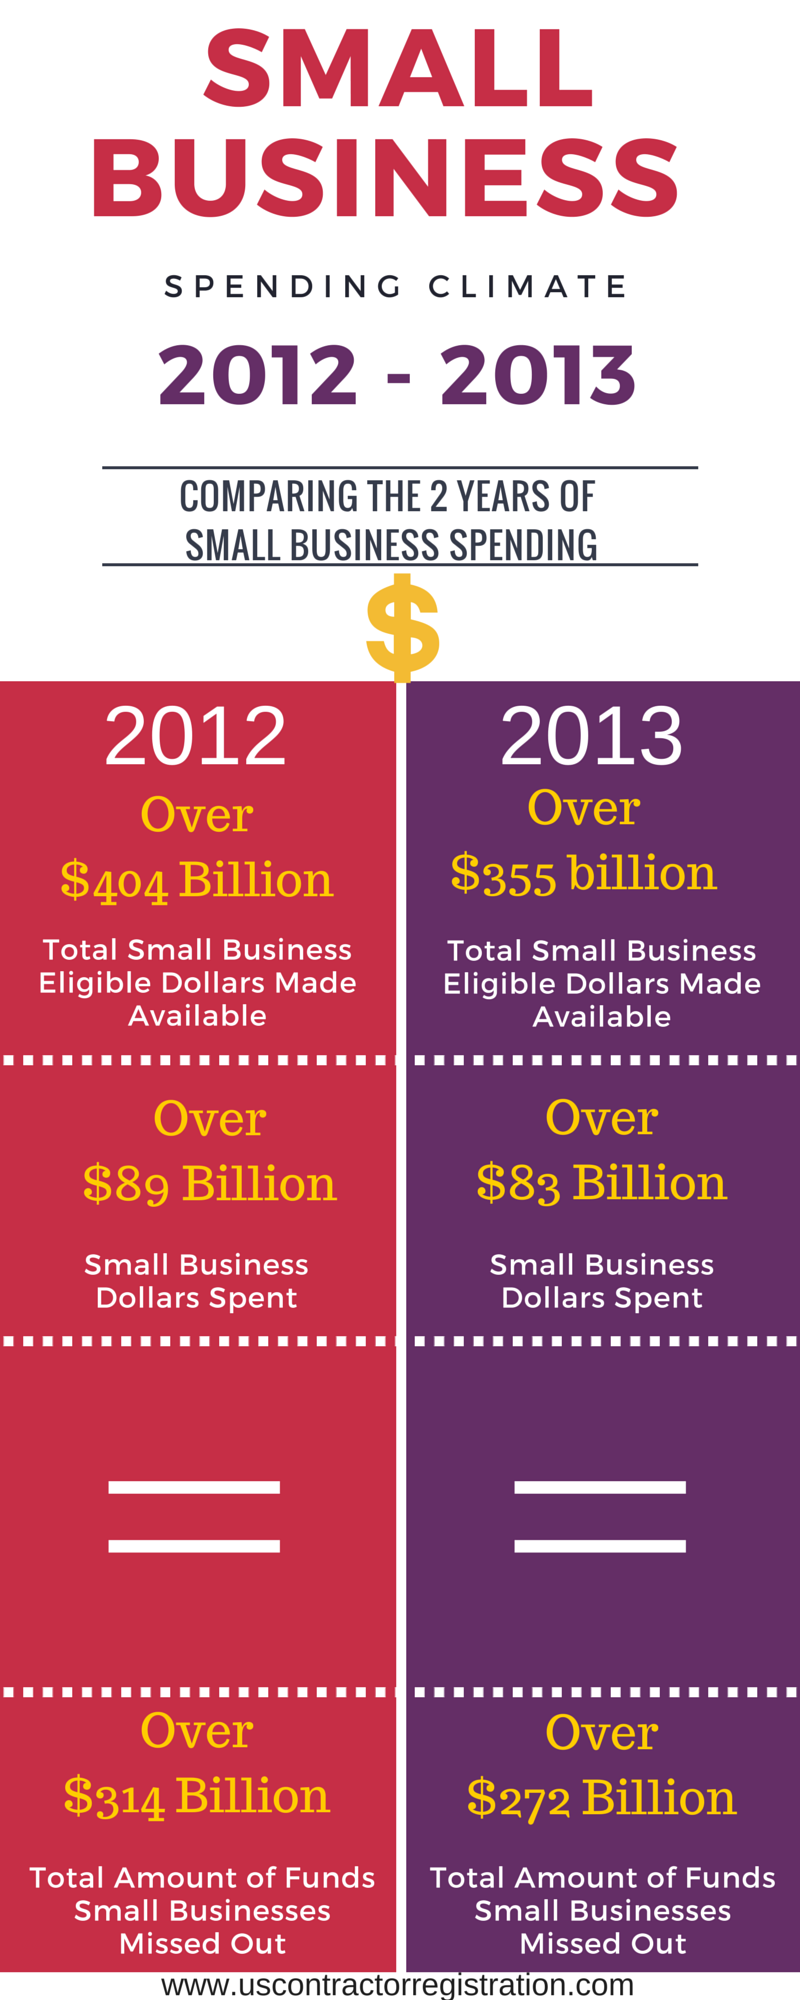 2012-2013 Small Business Spending Climate Infographic